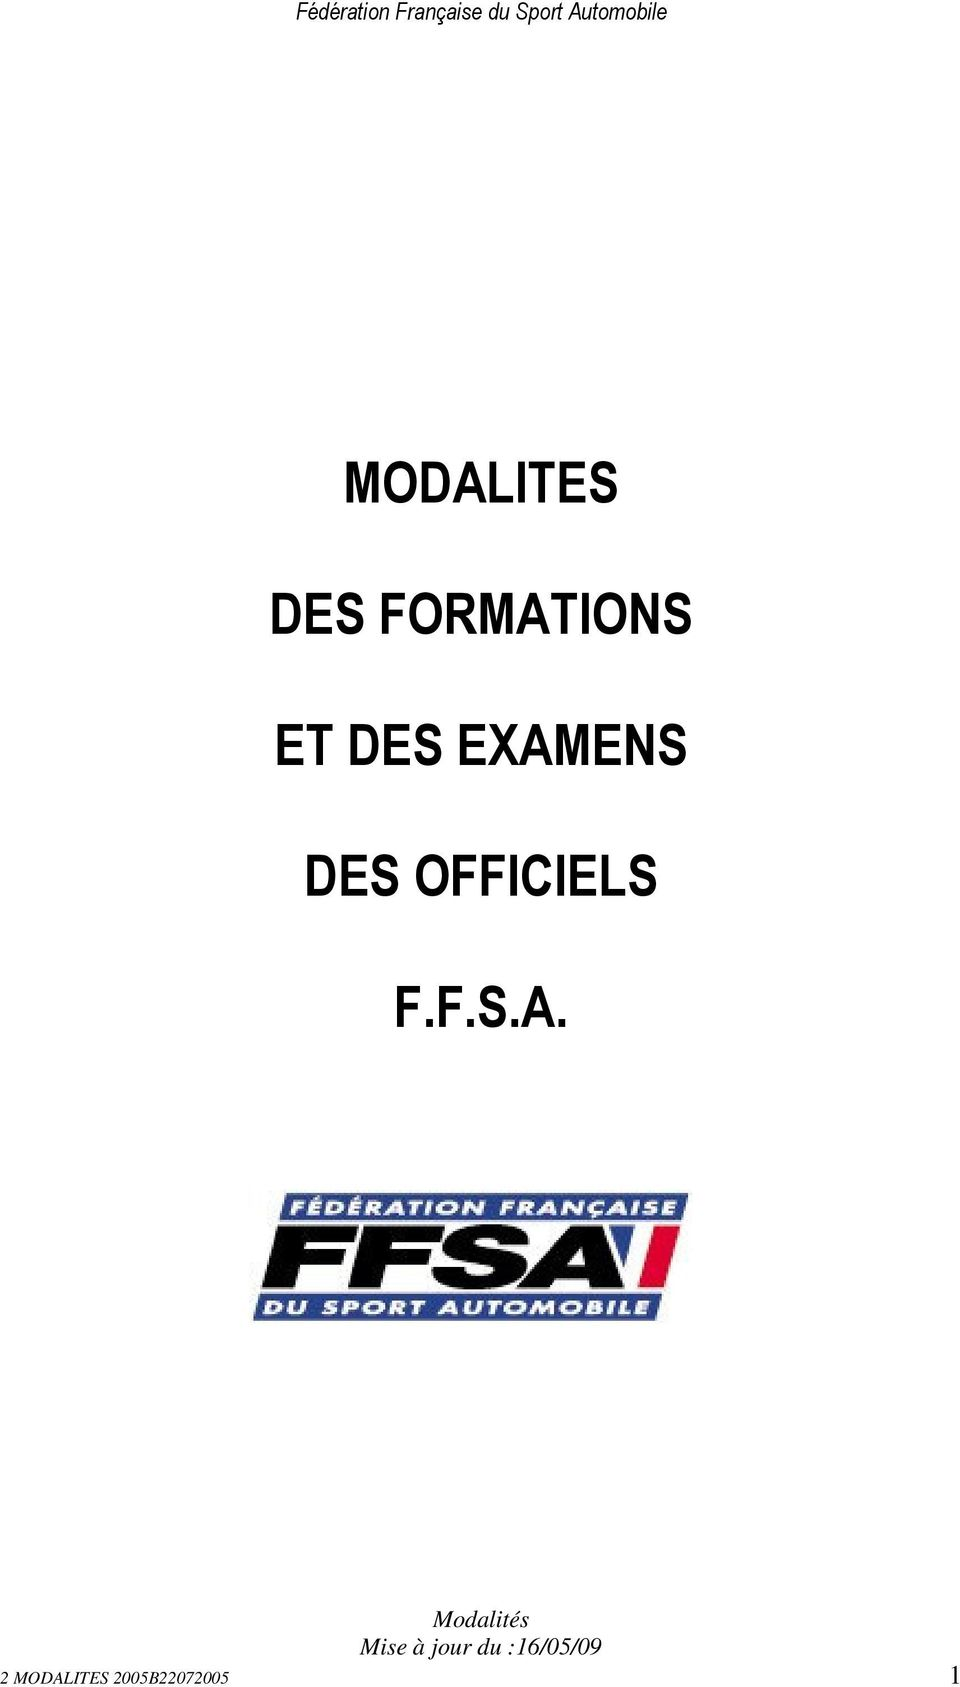 OFFICIELS F.F.S.A.